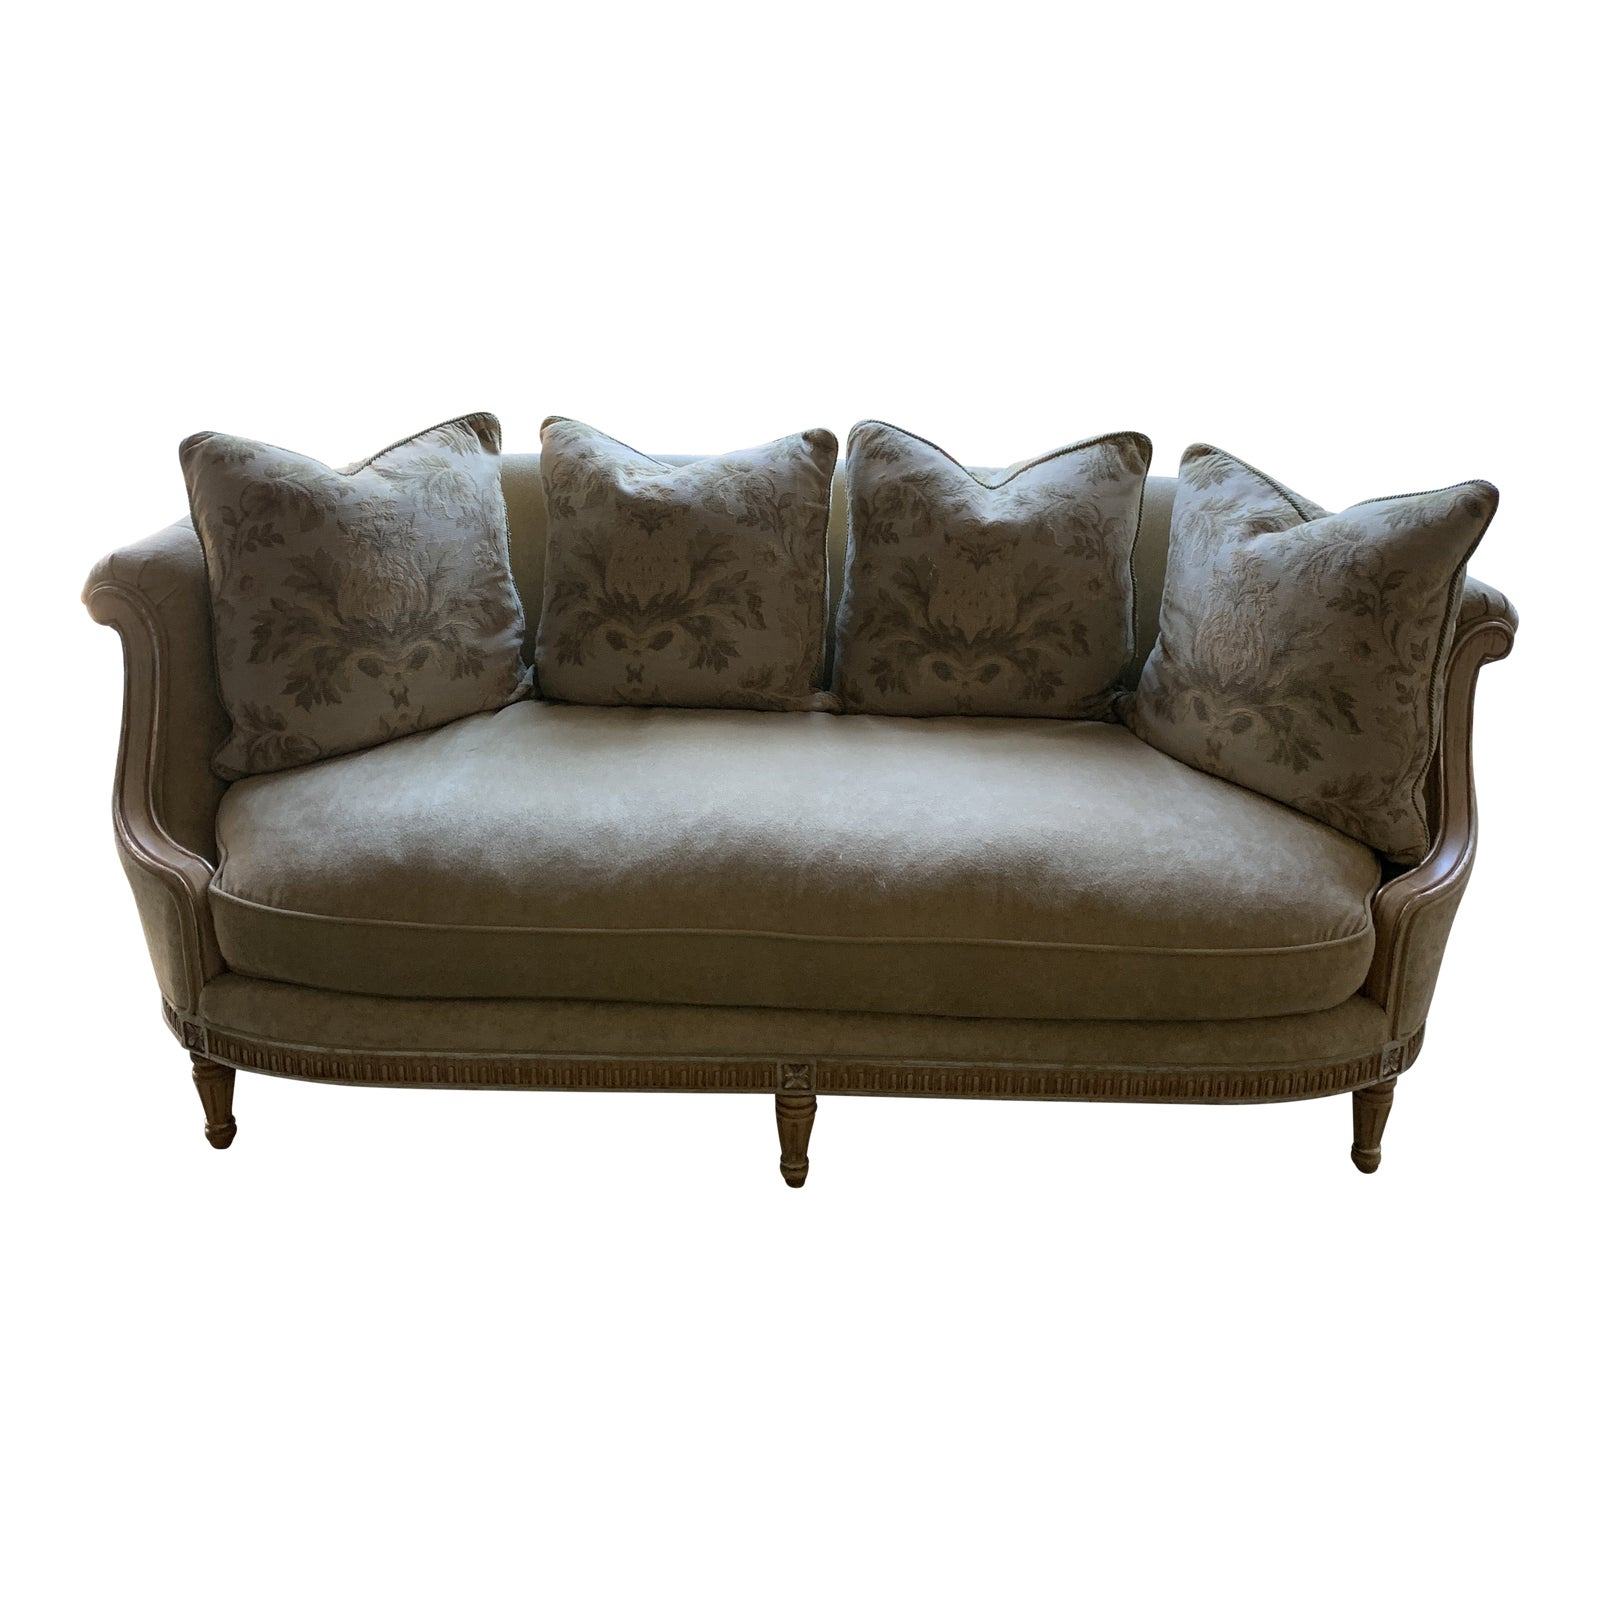 French Style Oversized Sofa | Chairish